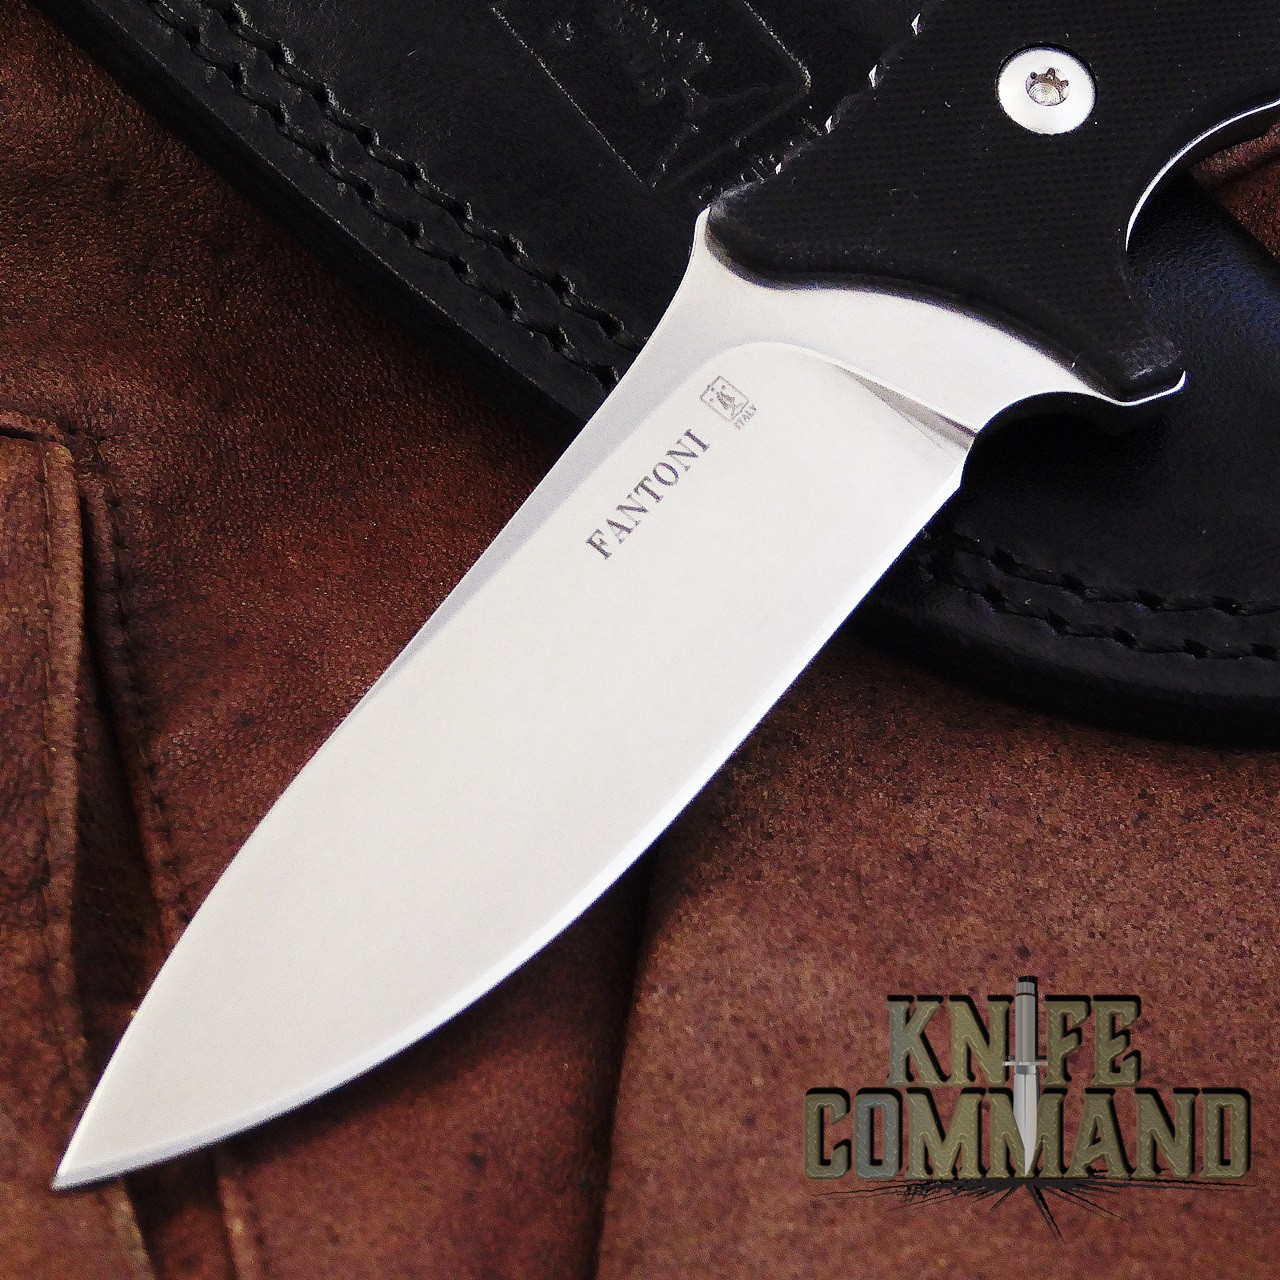 Fantoni HB Fixed Blade William Harsey Combat Tactical Knife S35VN Leather.  CPM S35VN stainless steel.